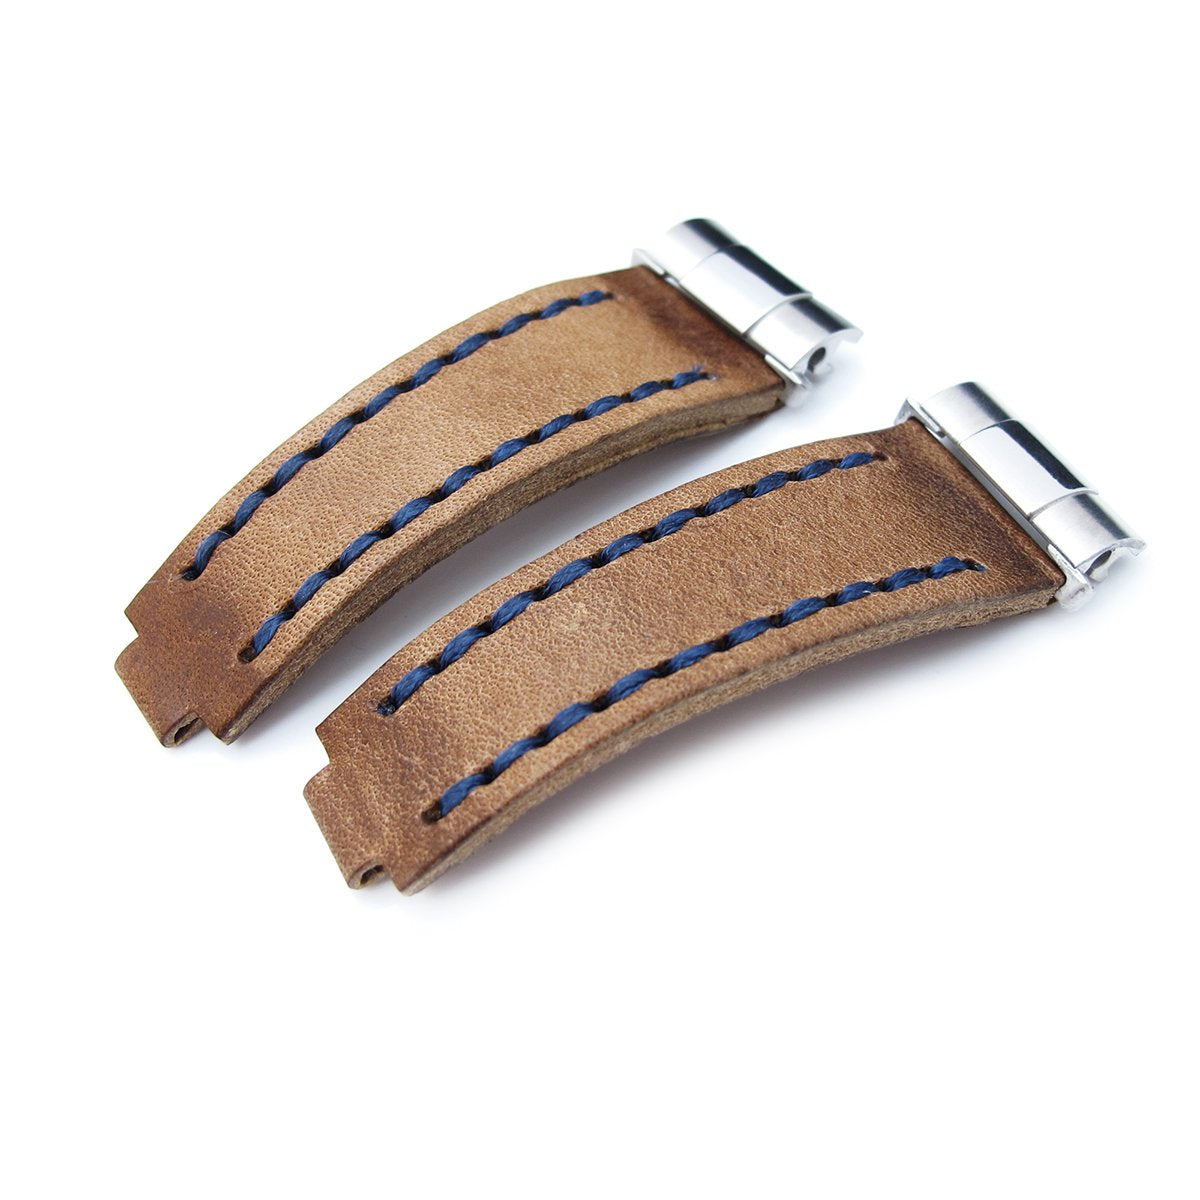 Revenge End Link Replacement Watch Strap Tailor-made for RX Matte Brown Pull Up Leather Blue St. Strapcode Watch Bands